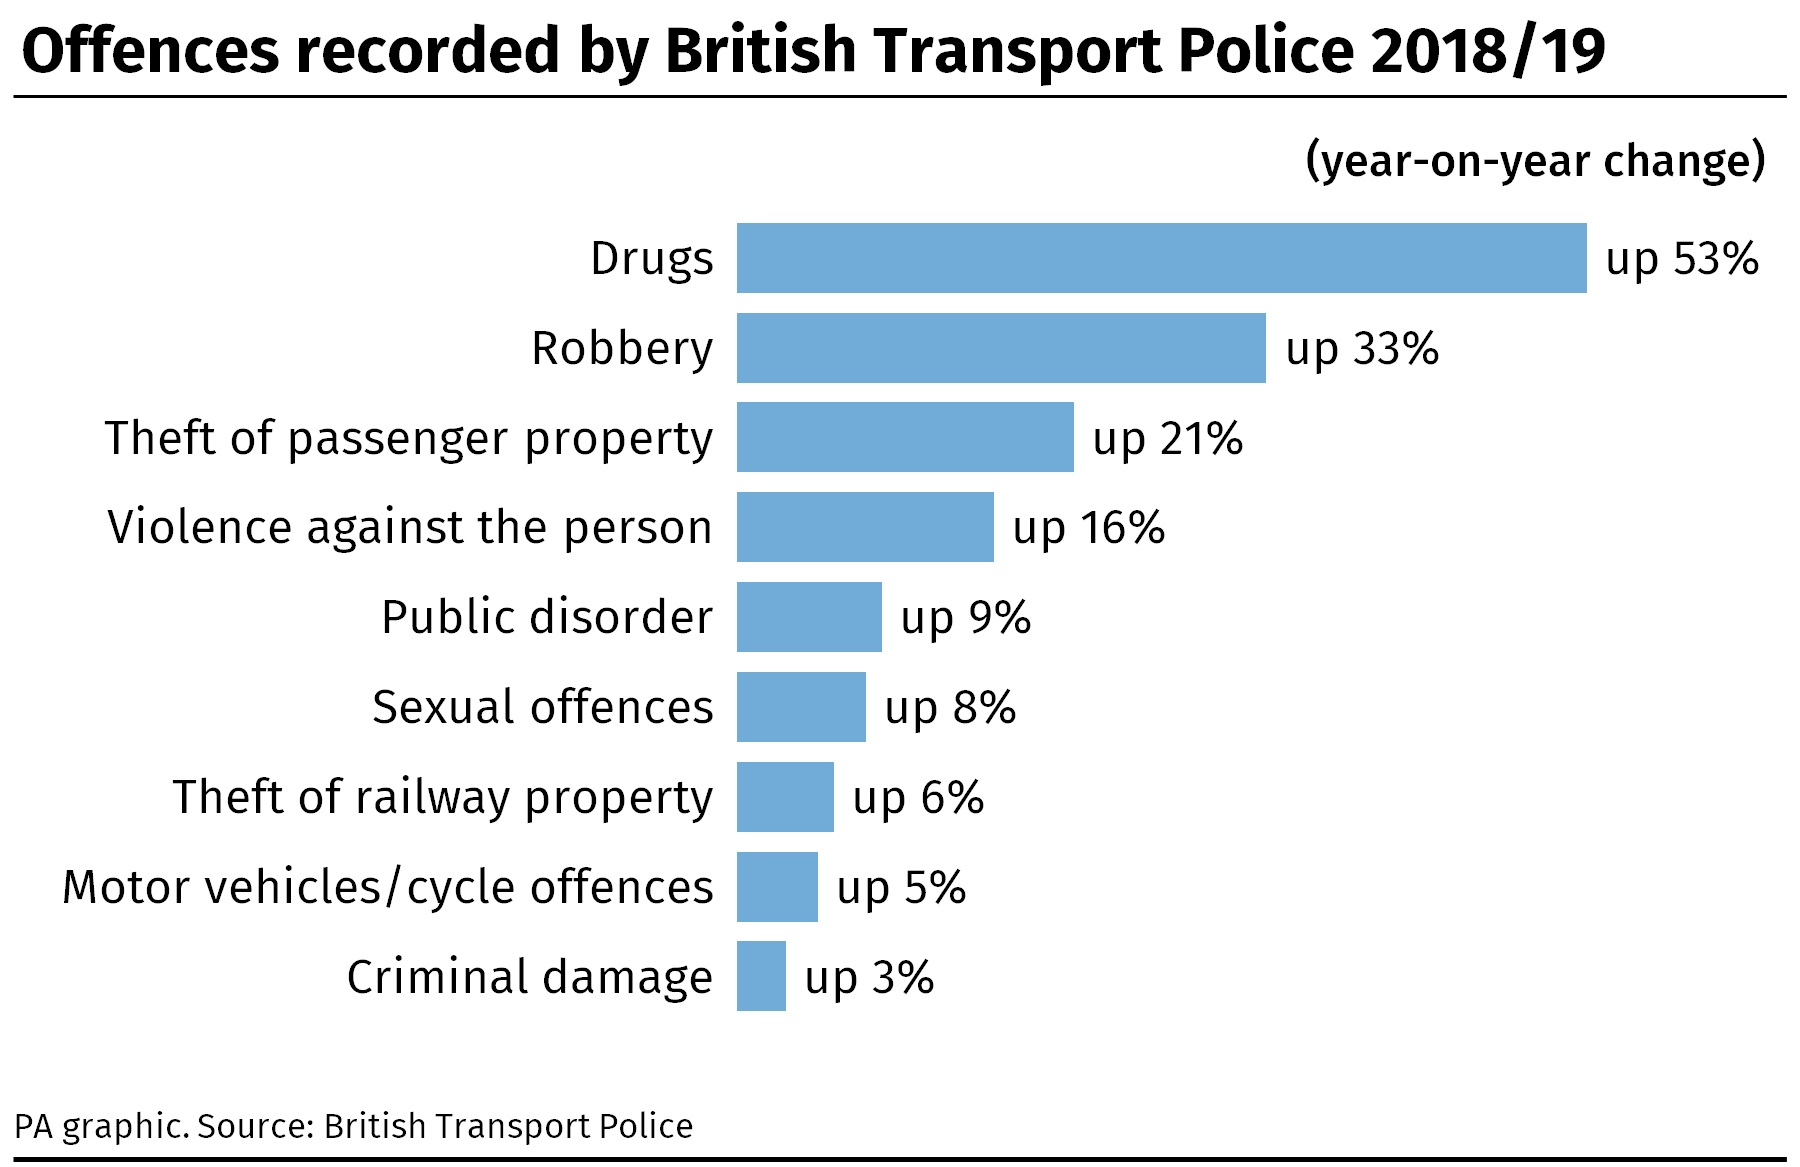 Offences recorded by BTP